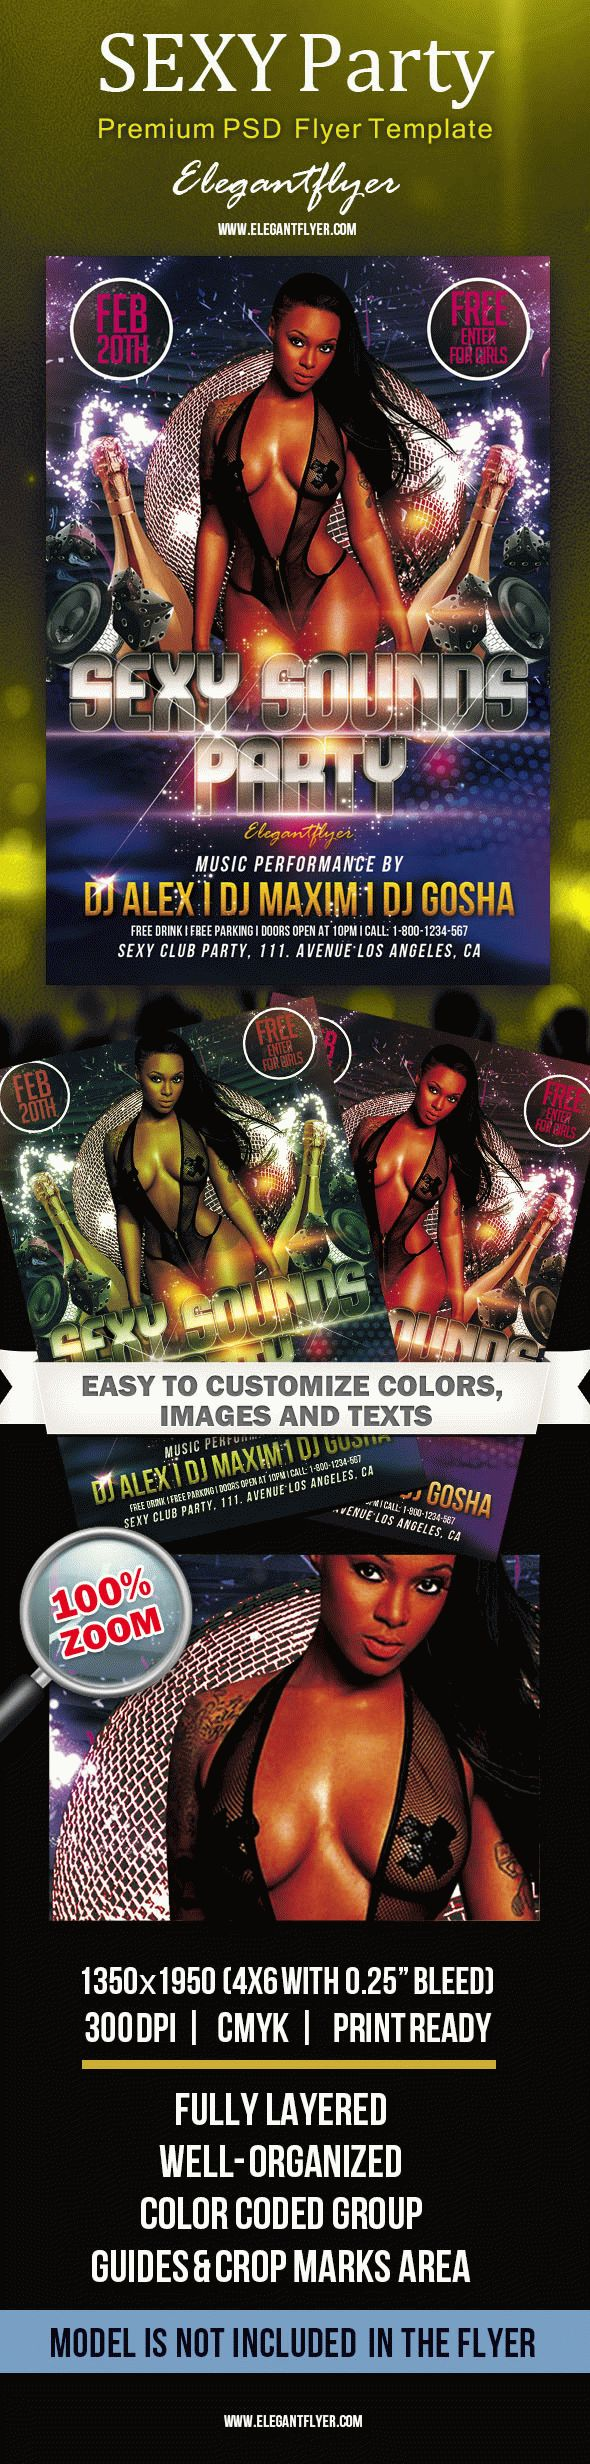 Sexy Sounds Party – Premium Club flyer PSD Template